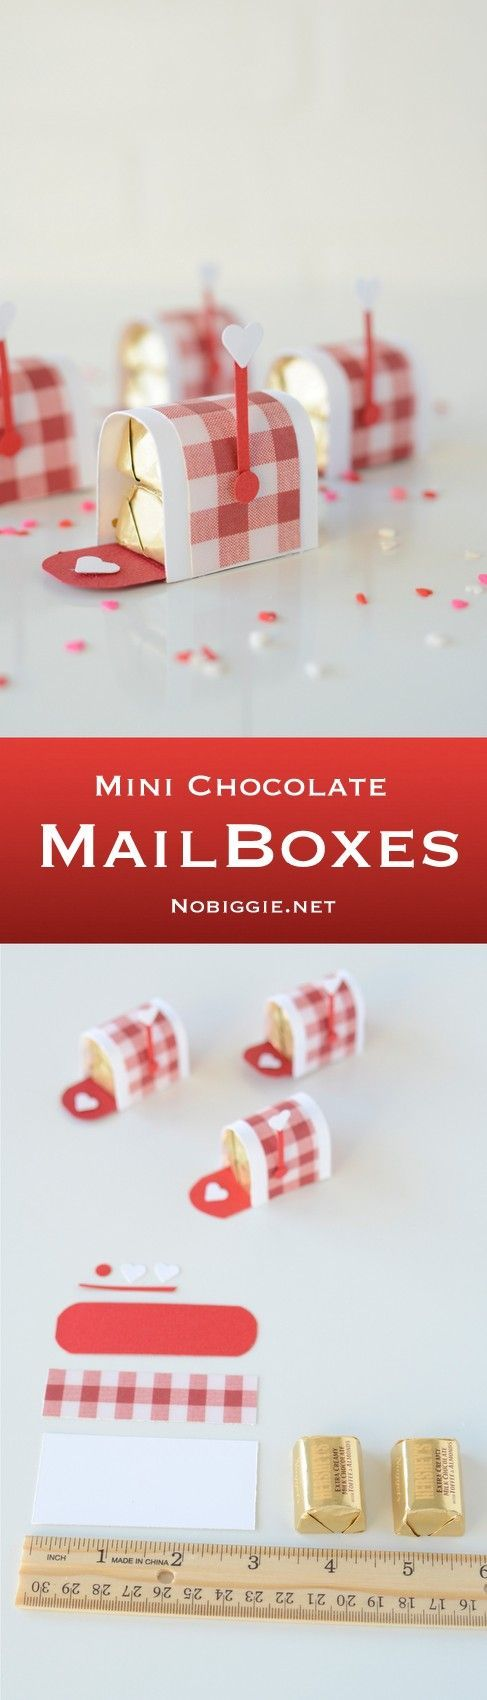 mini chocolate mailboxes | a Valentine's Day treat